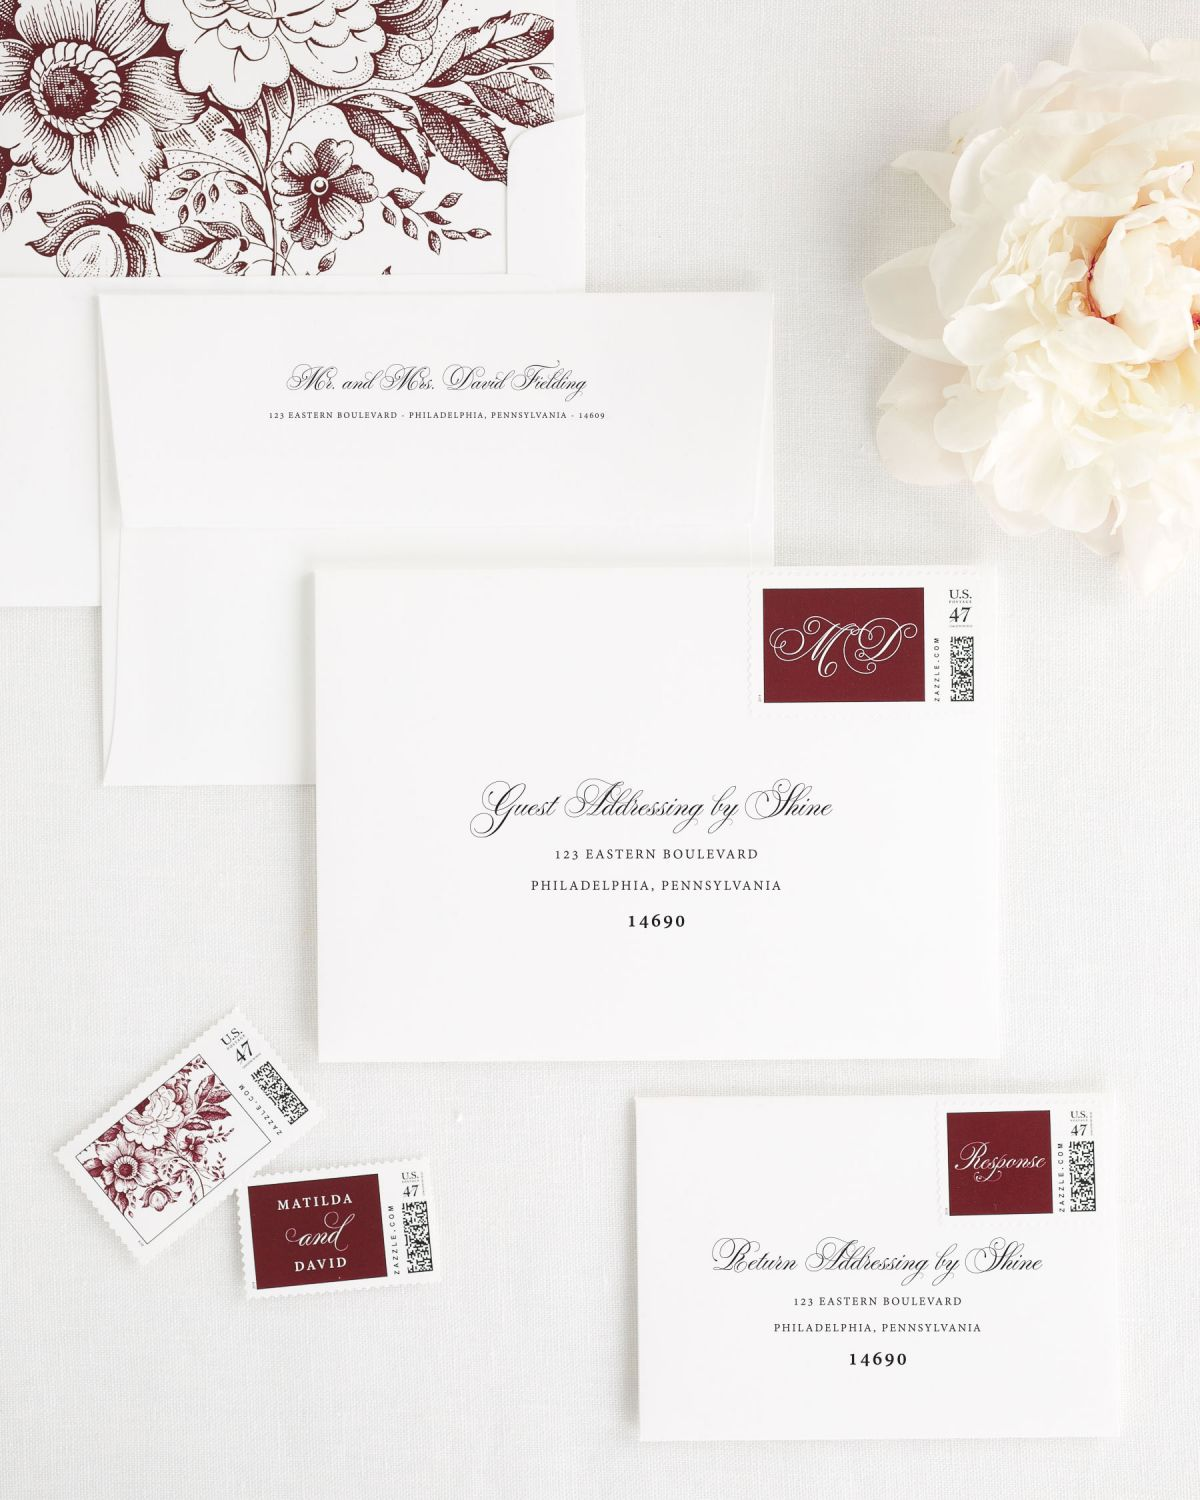 Wedding Invitation Envelopes with Cabernet Personalized Stamps and Floral Liner